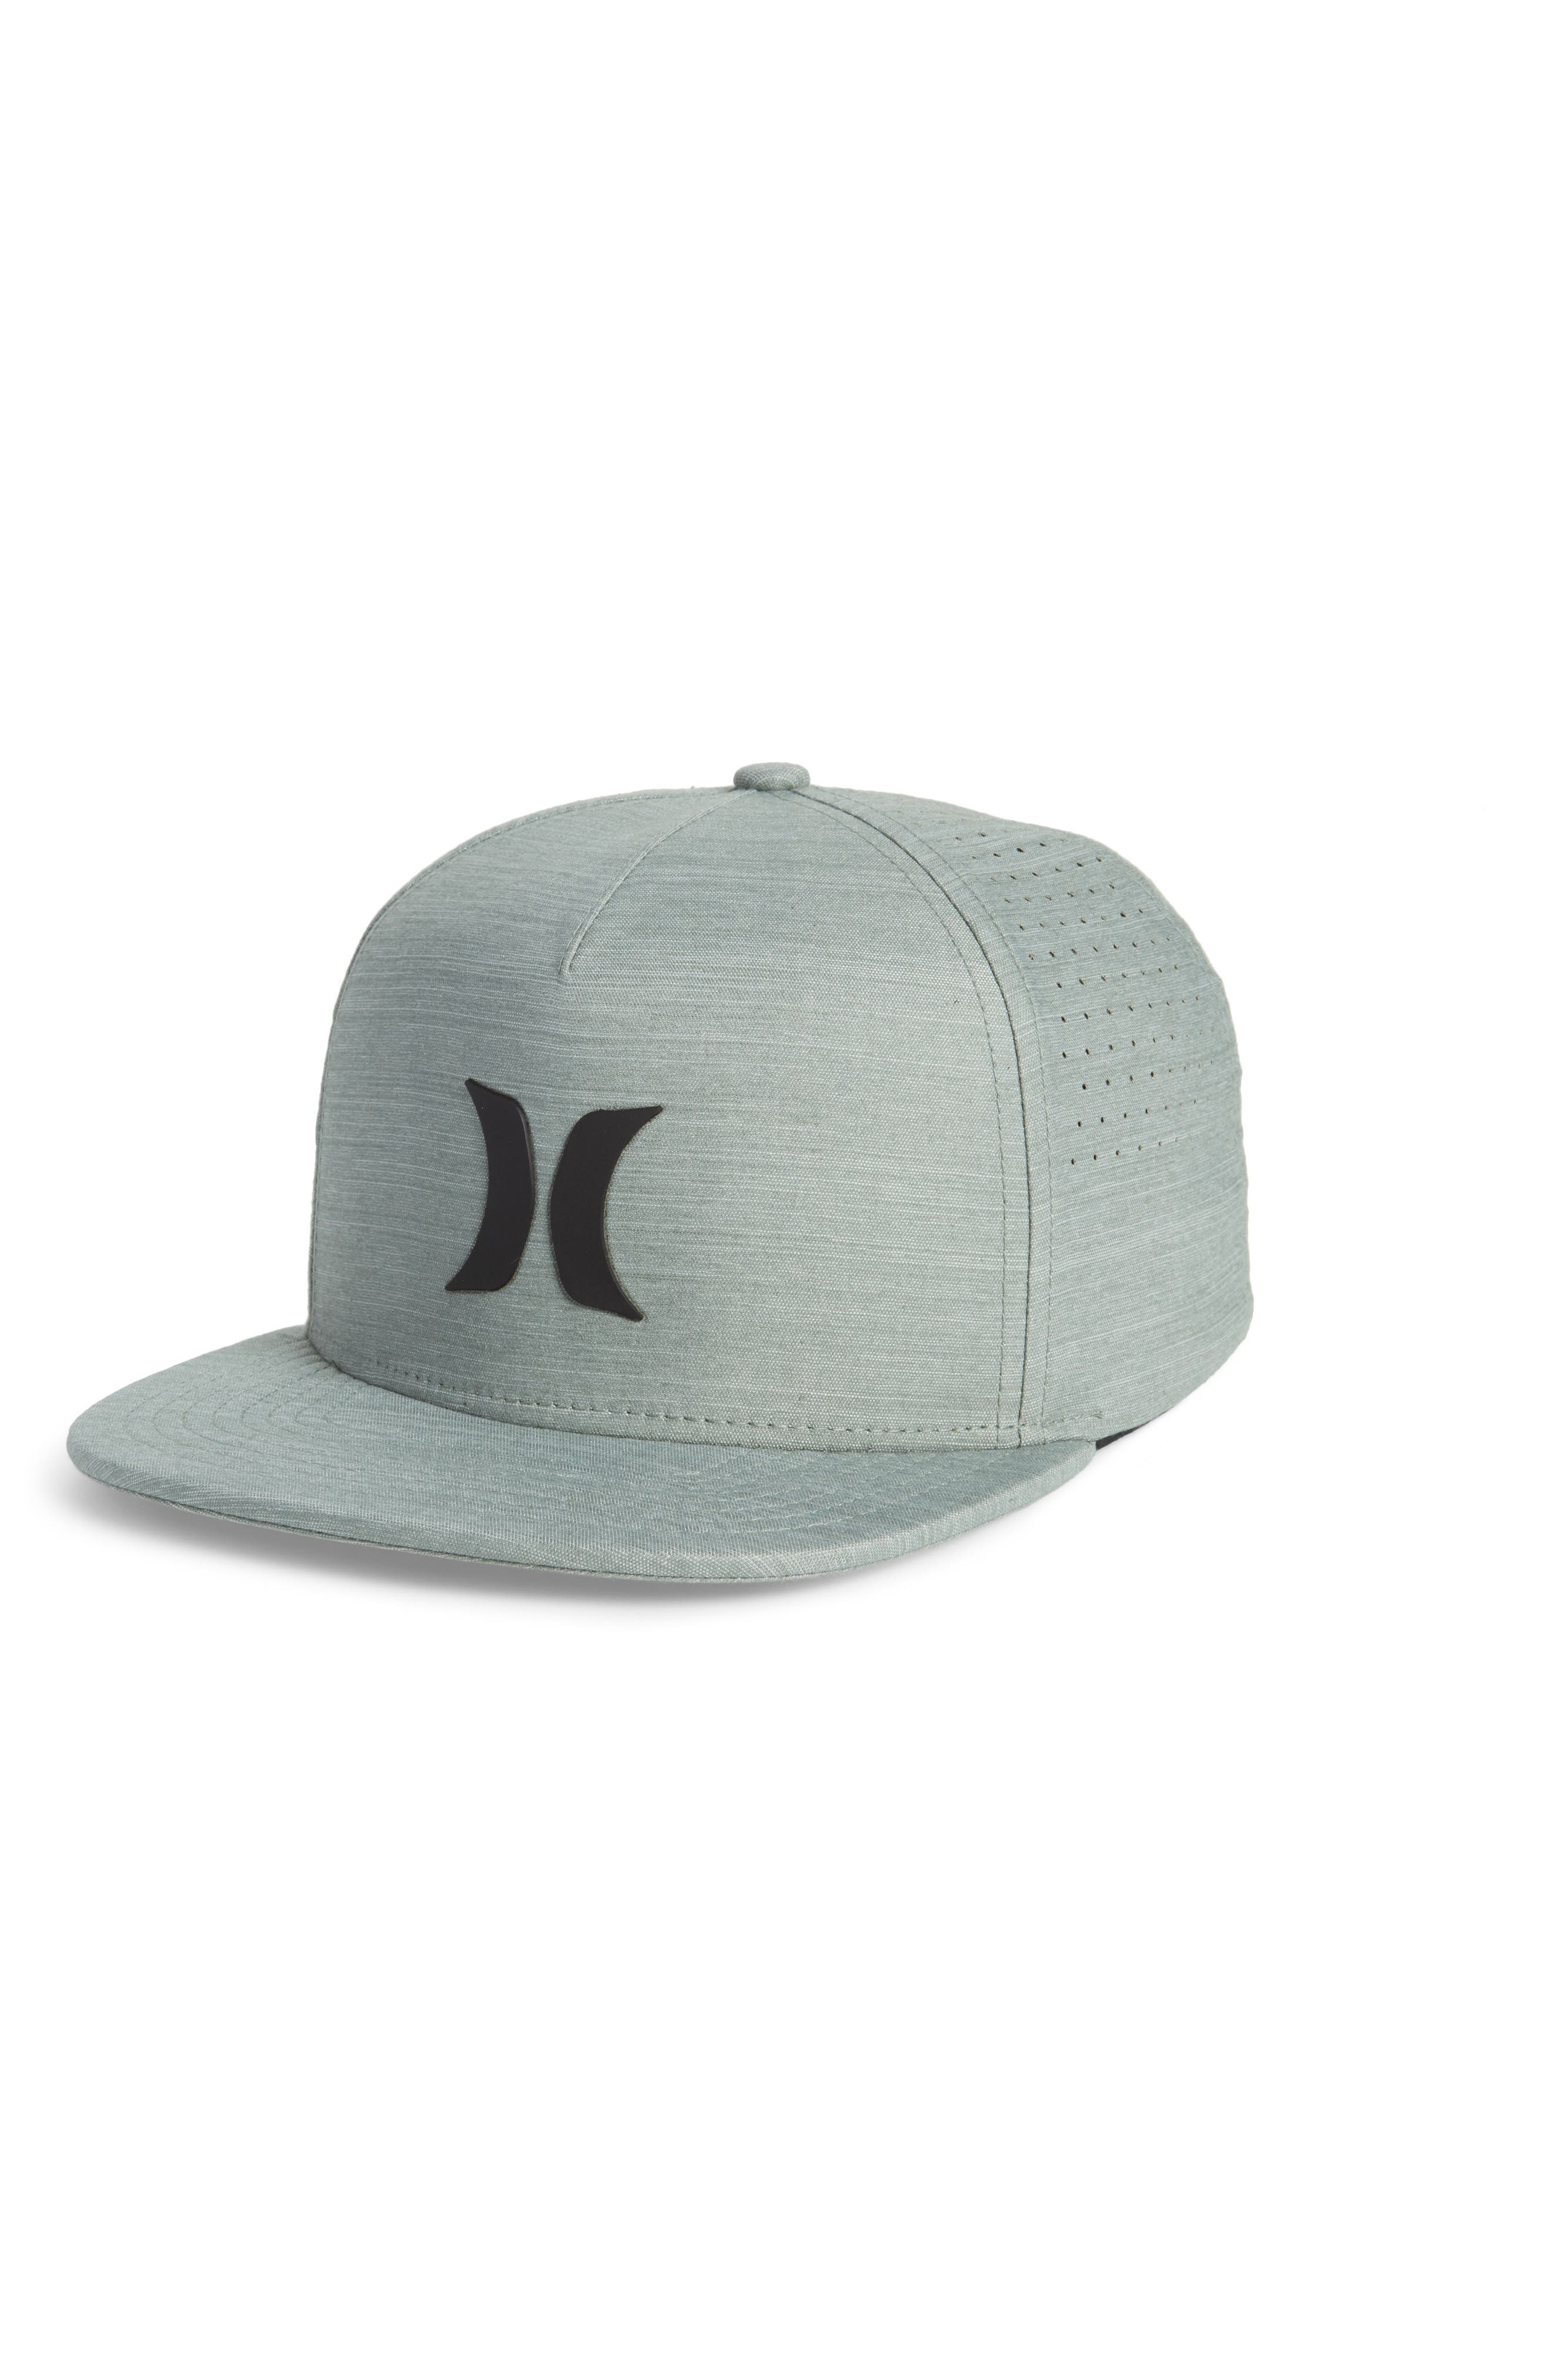 Hurley Dri-FIT Icon 4.0 Ventilated Logo Cap